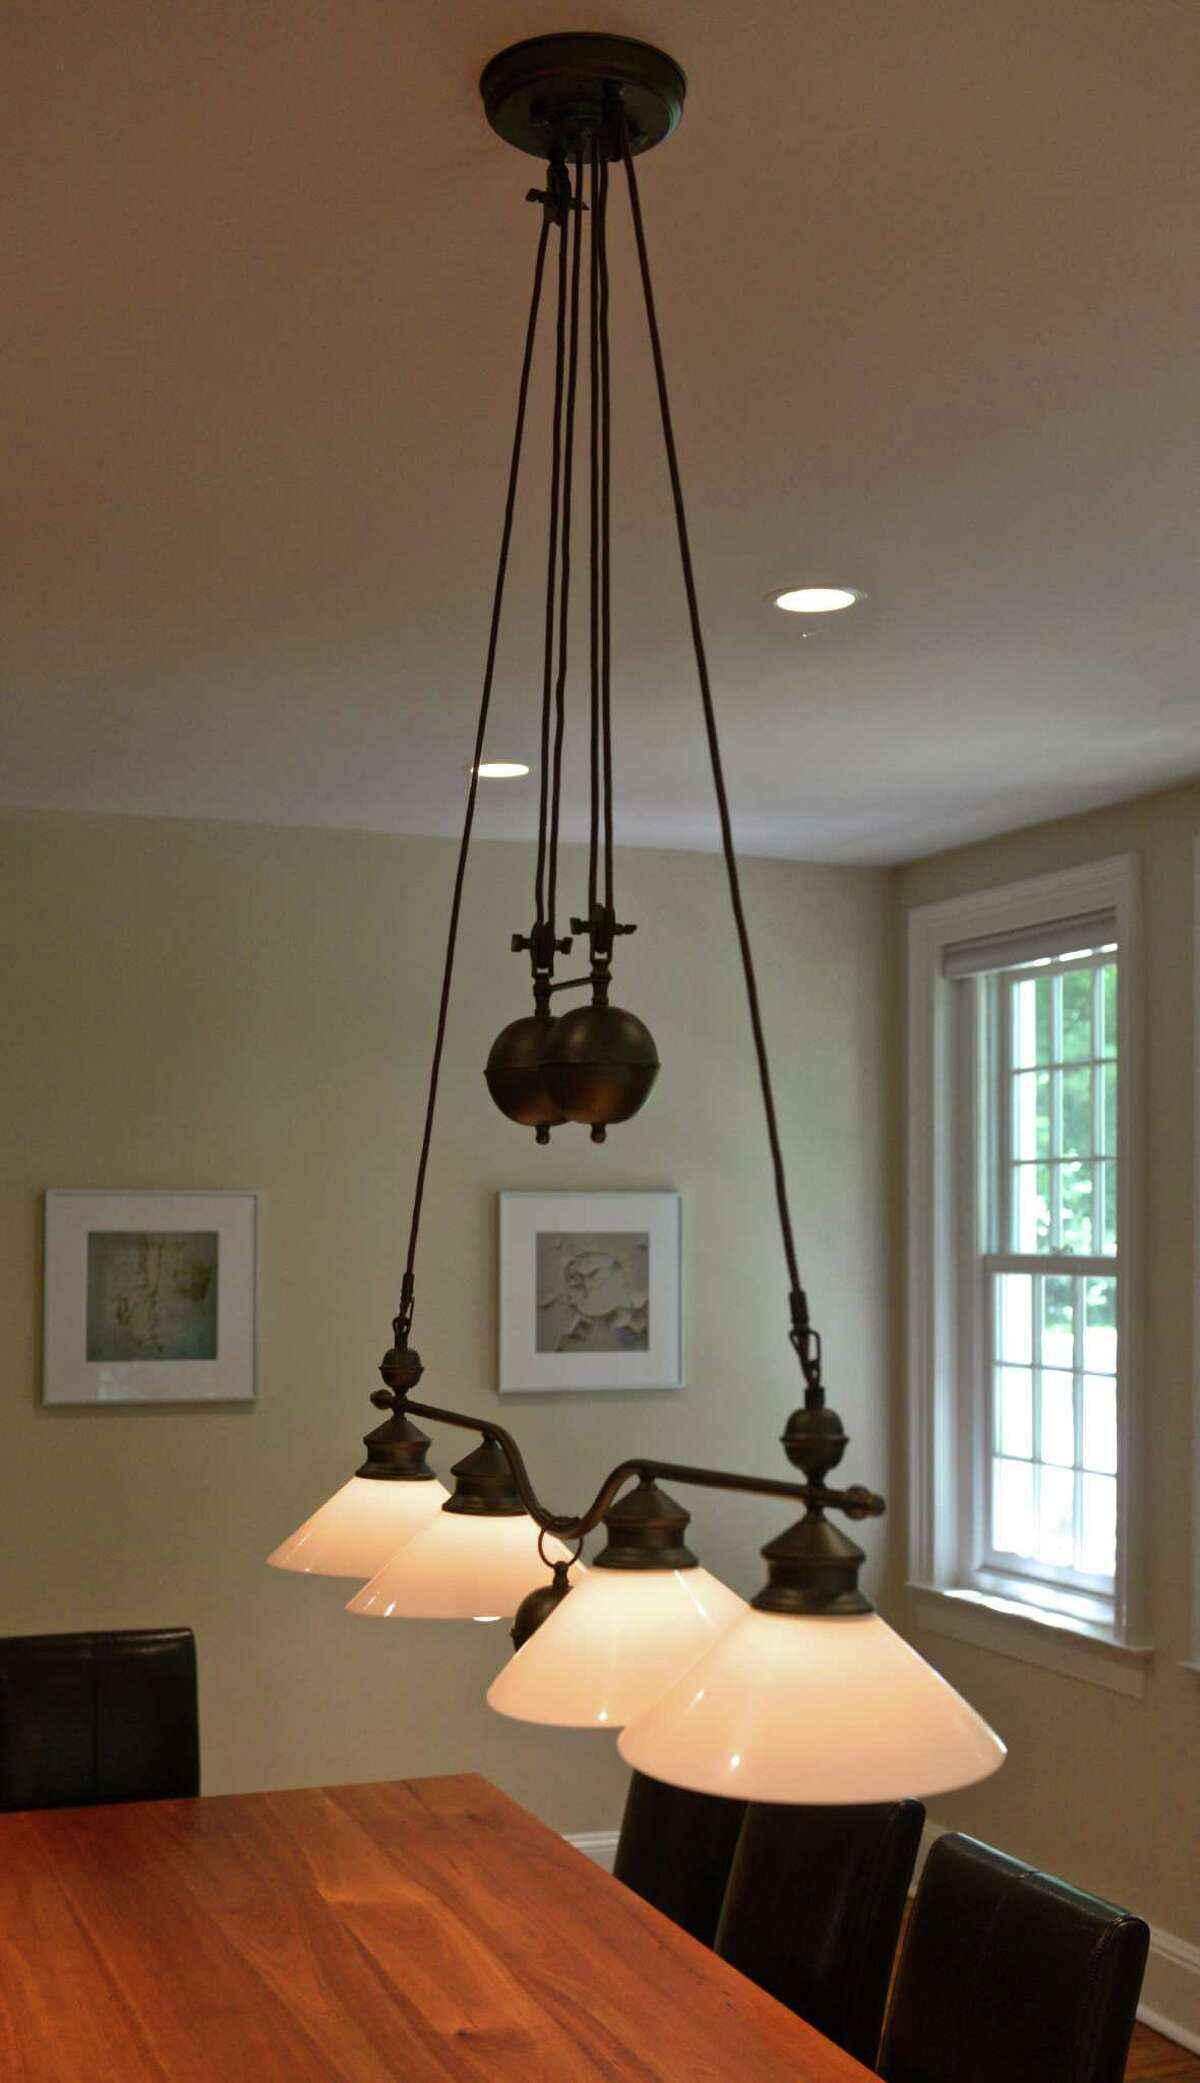 A light in a conference room at 5 Booth House Lane, a unique office building available in New Milford, Conn, that is an 1812 brick colonial that was recently restored by its owner, Joe Mammano. Thursday, August 13, 2015.